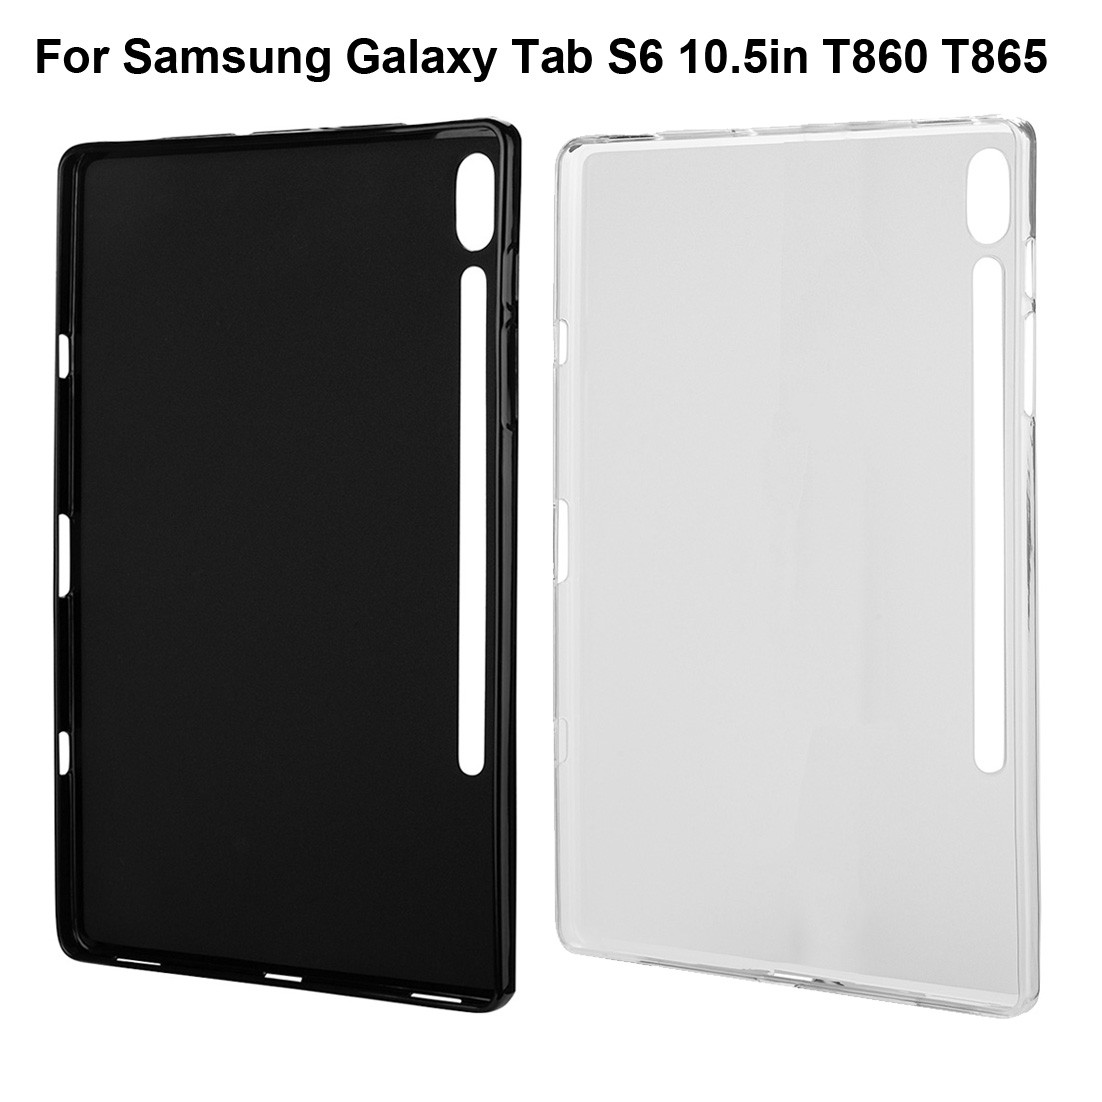 For Samsung Galaxy Tab S6 10.5in T860 T865 Soft Silicon Solid Clear TPU Shock-proof Case Cover tablet protective case for Sam s6 image